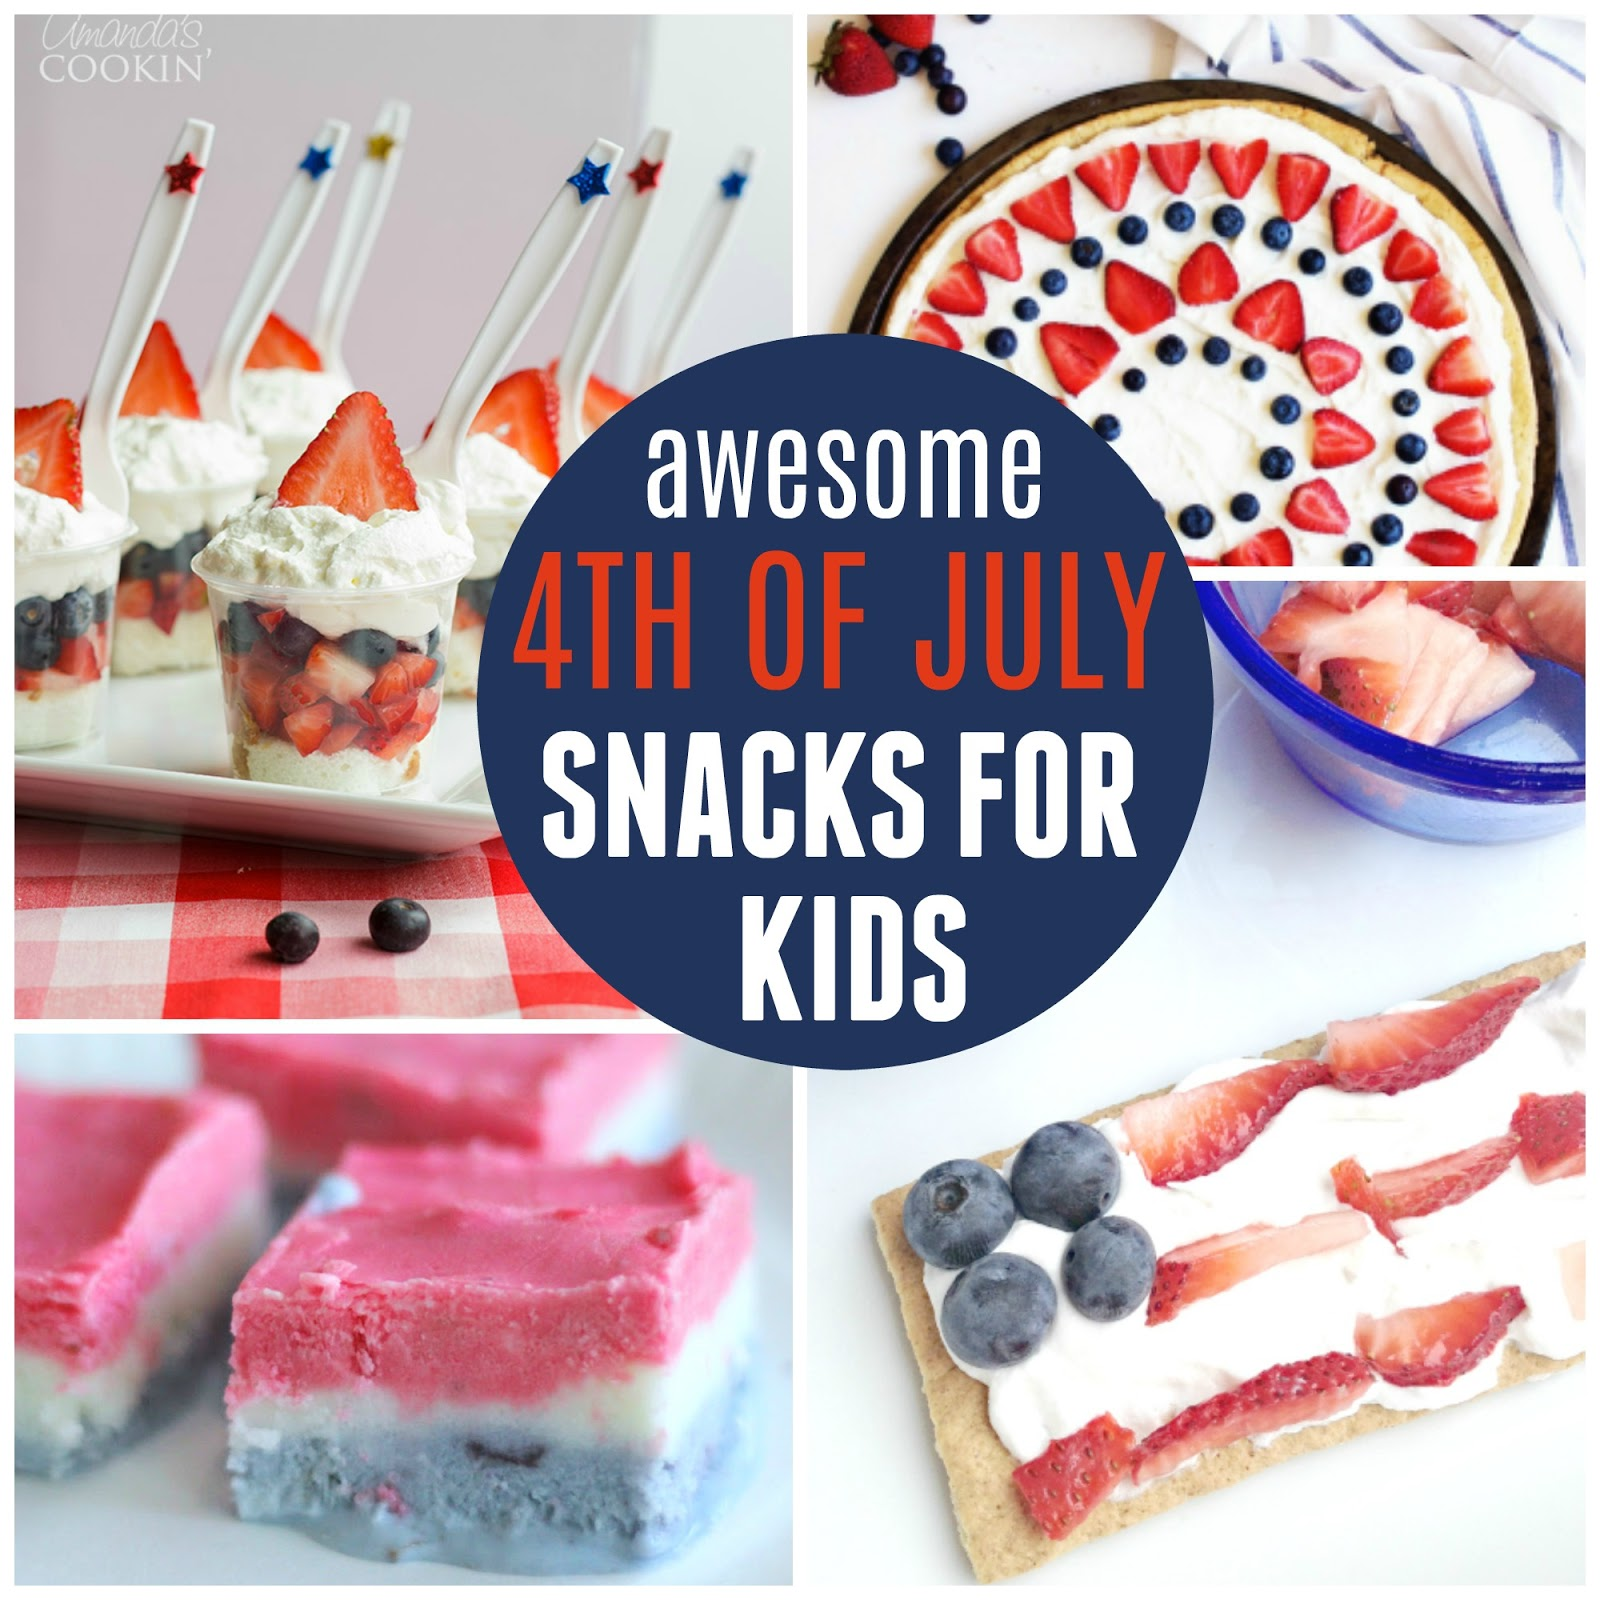 Toddler Approved!: 12 Awesome 4th of July Snacks for Kids